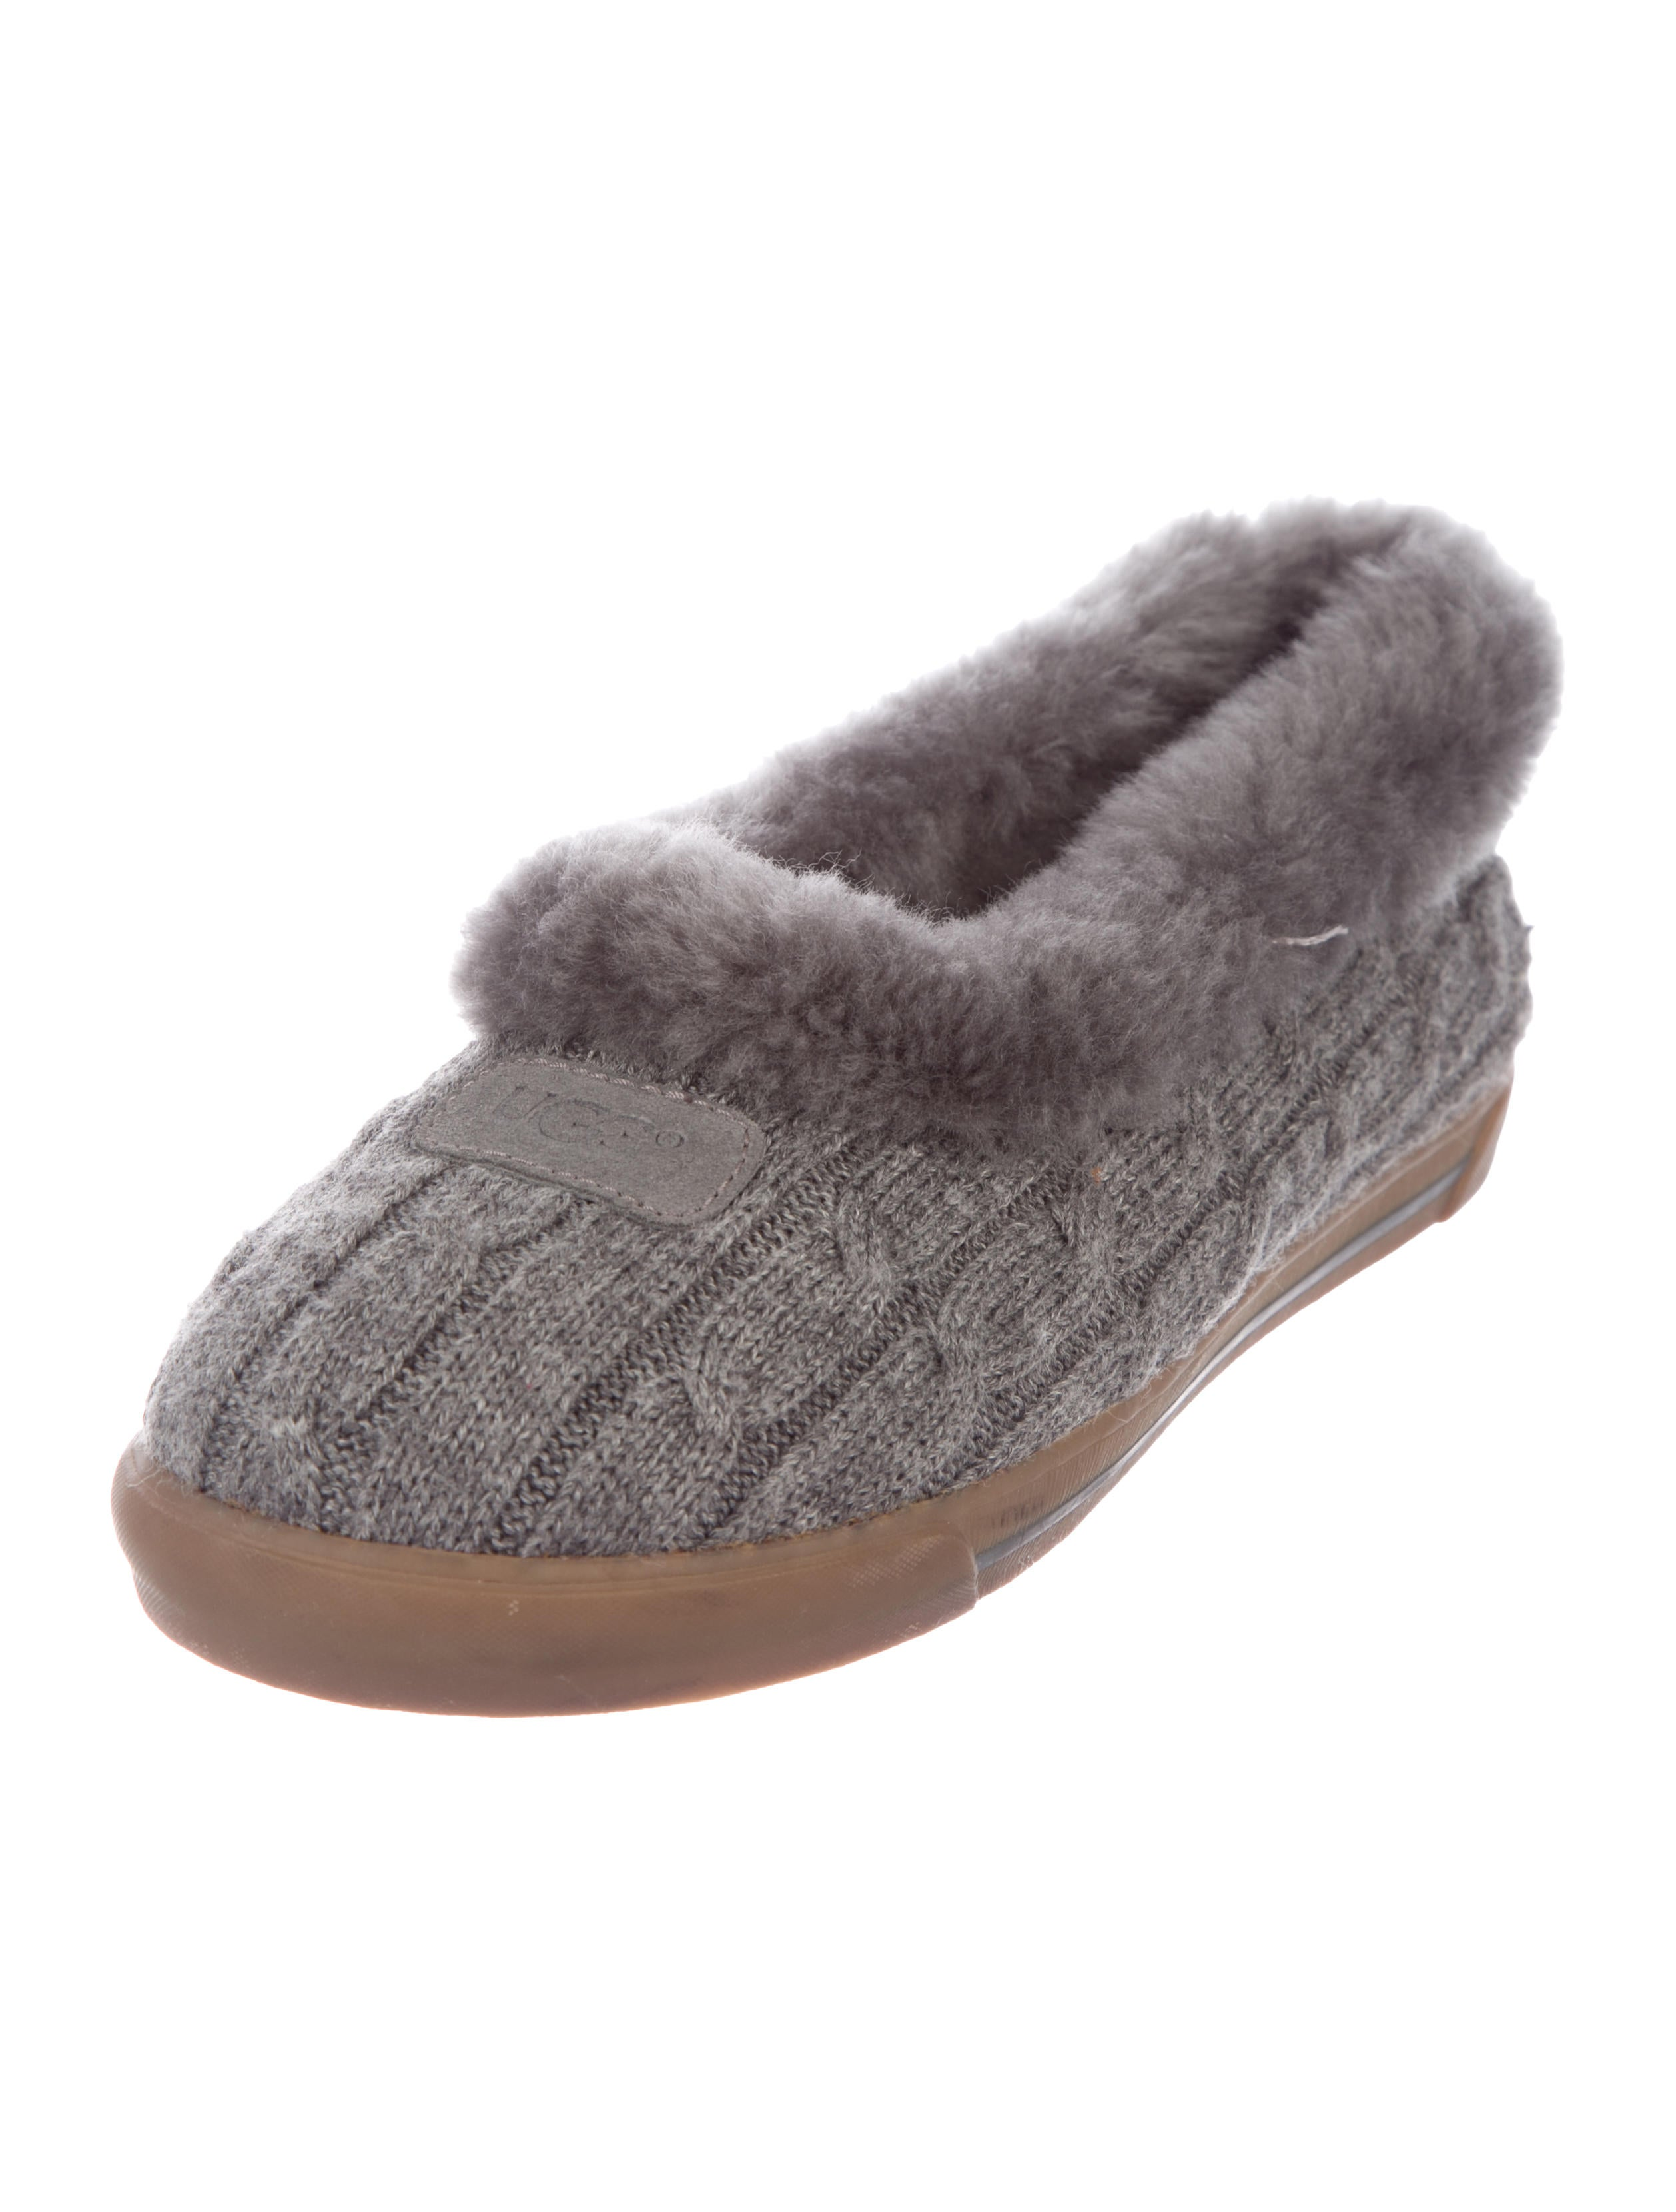 Ugg Australia Shearling Lined Cable Knit Slippers Shoes